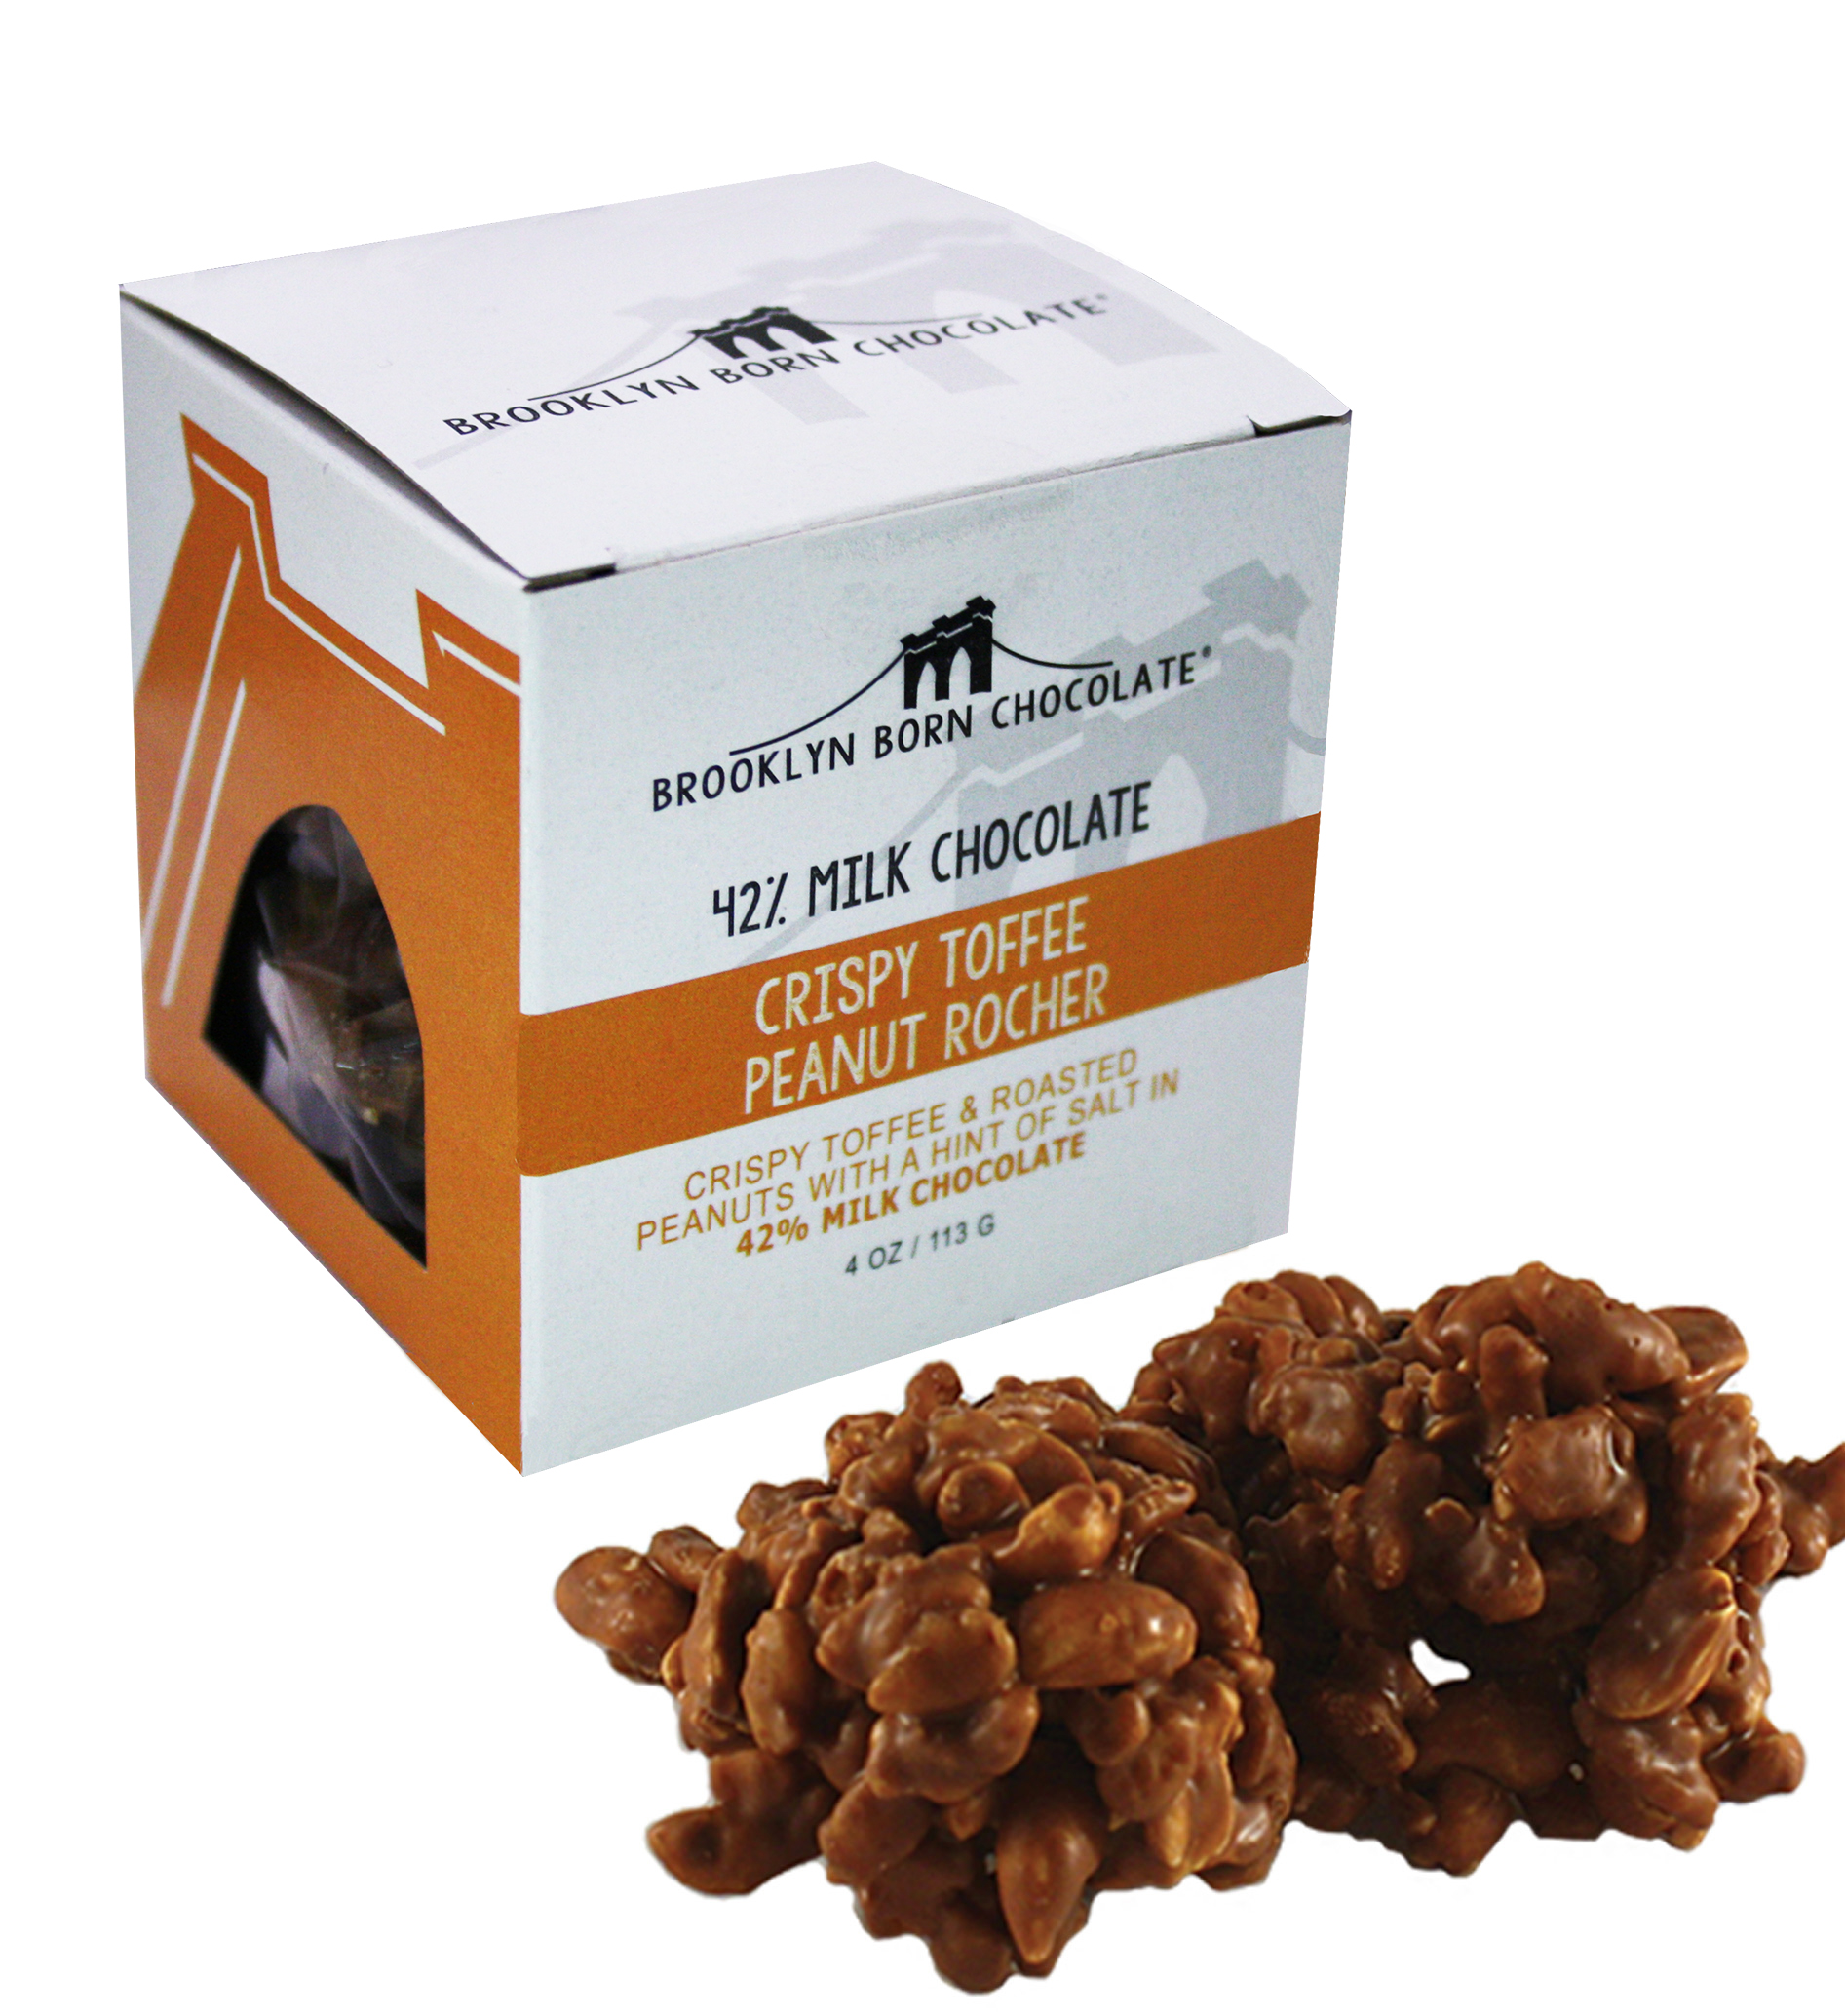 Crispy Chocolate Toffee Peanut Rocher CUPR